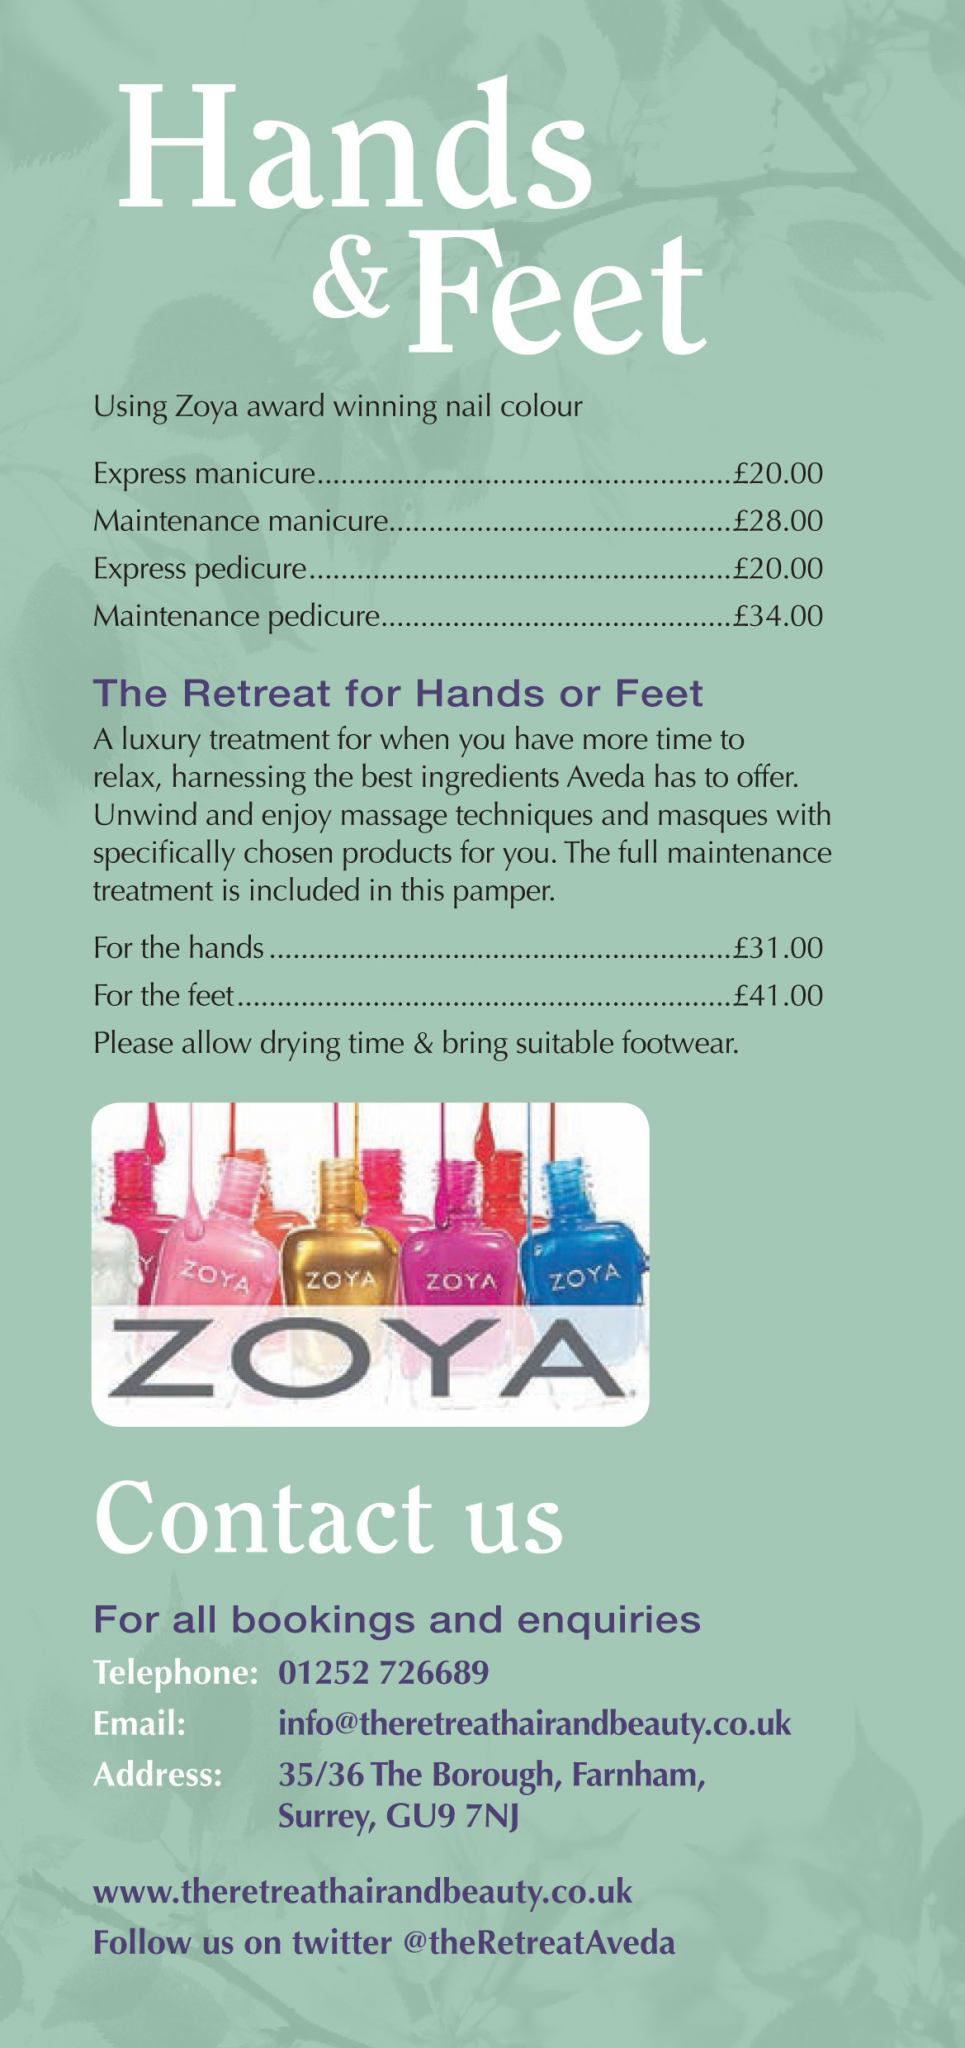 Take A Look At Our Hands Feet Prices View Pricelist Here